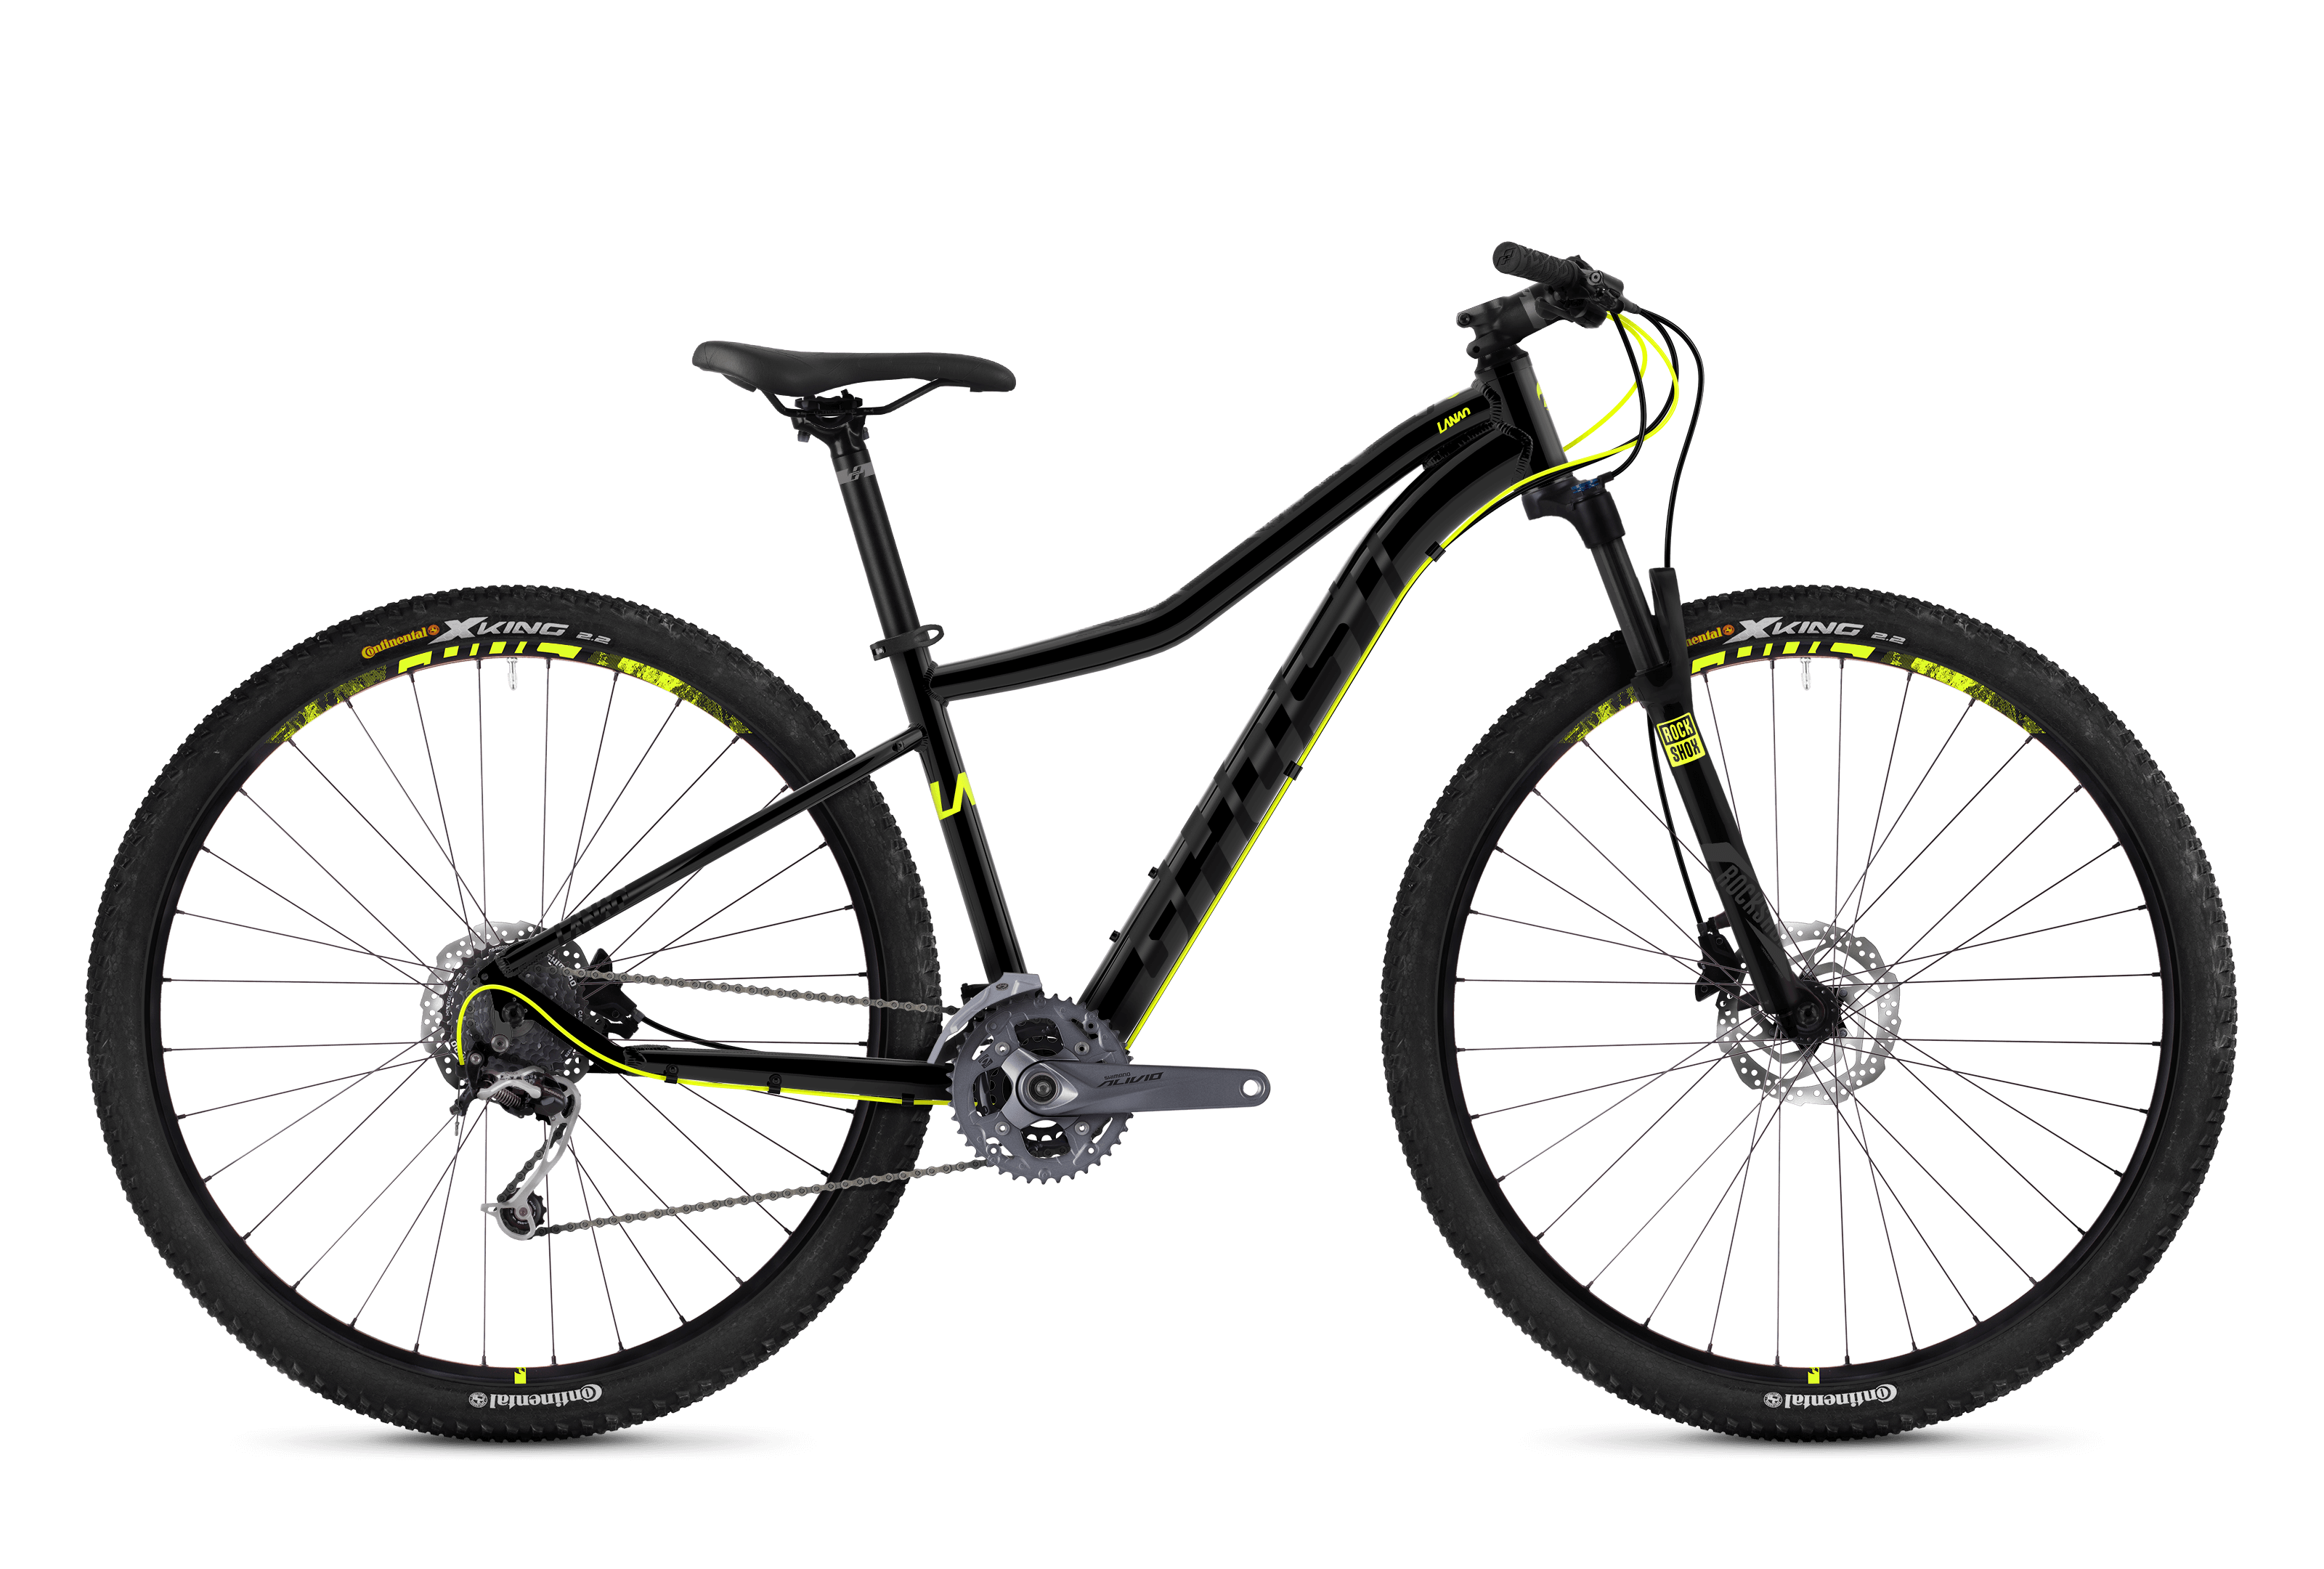 Bicykel Ghost Lanao 5.9 black / yellow